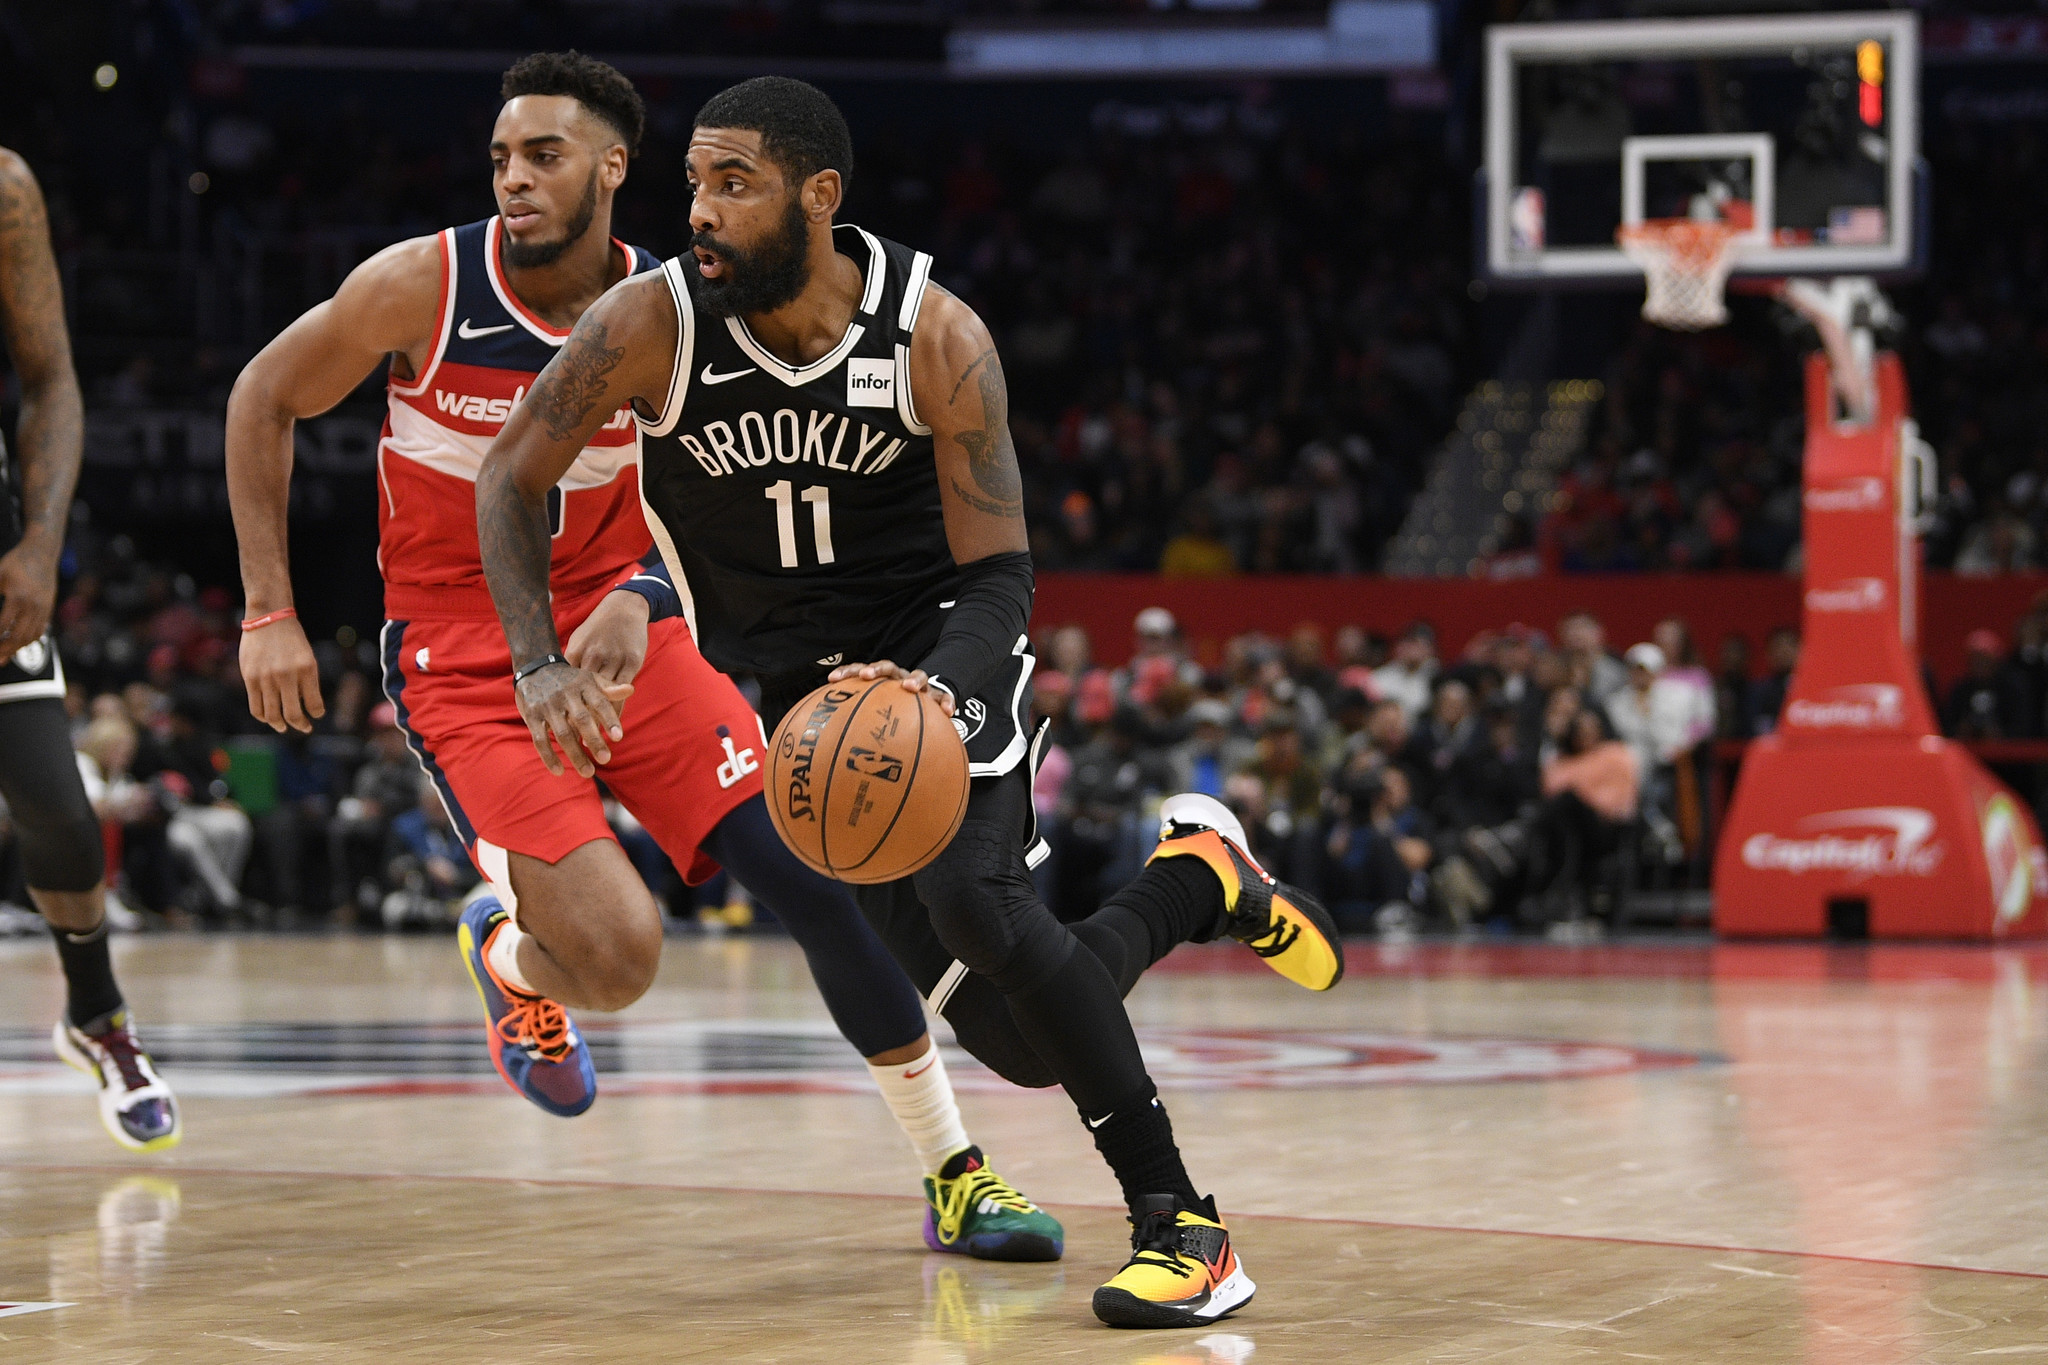 Nets star Kyrie Irving likely to undergo shoulder surgery, out indefinitely: report